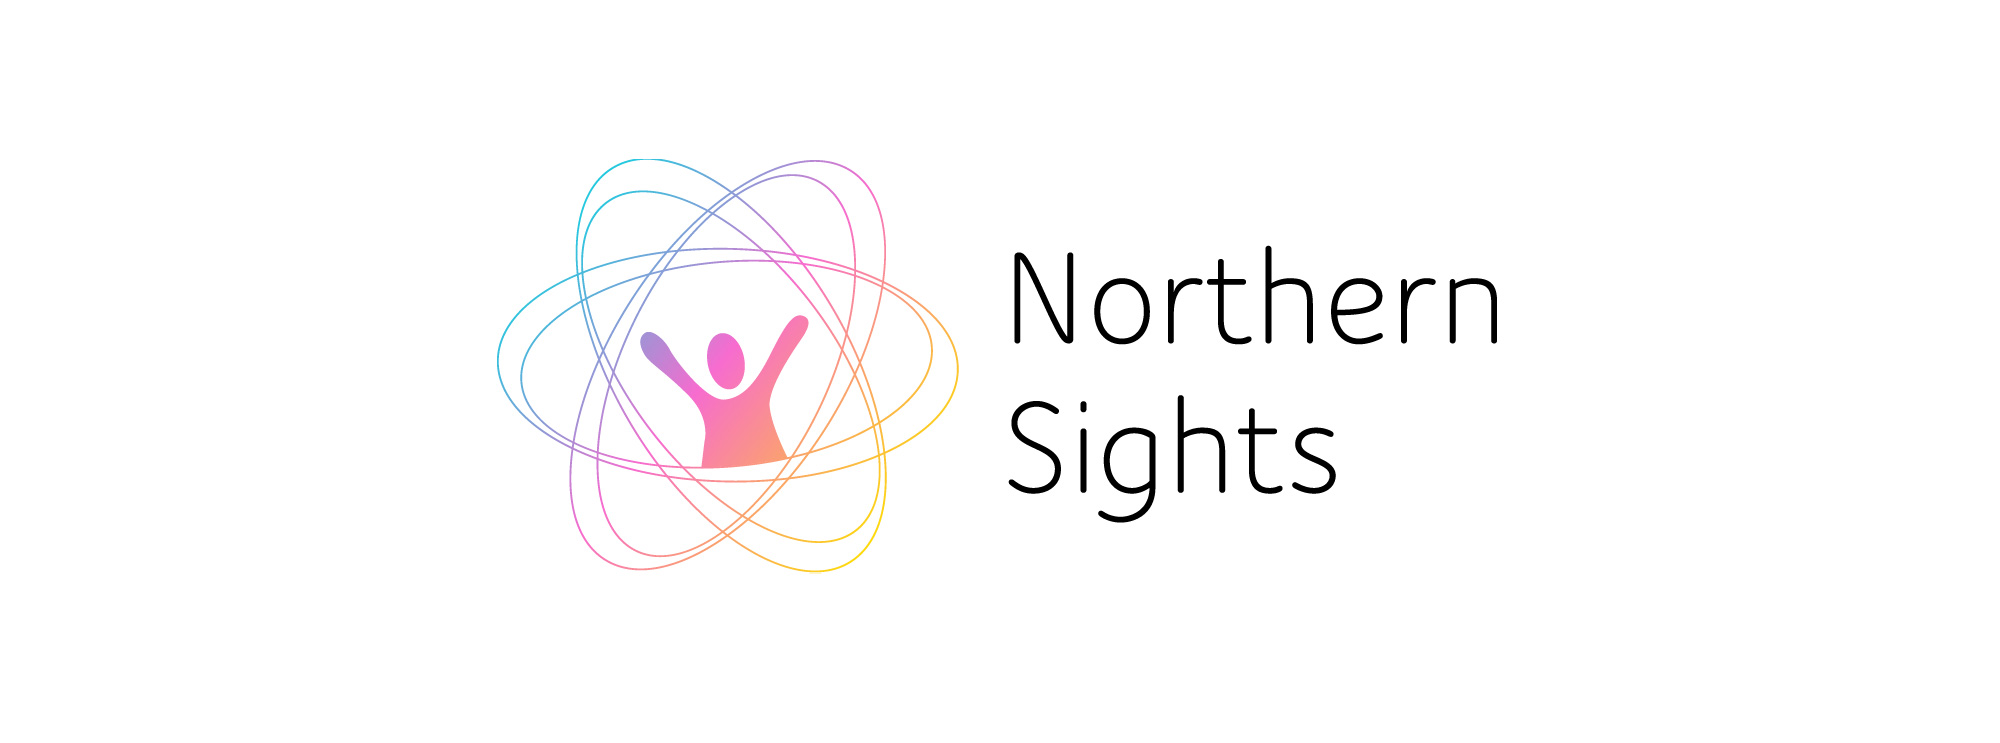 Logo designed for Northern Sights in Yellowknife, NT.